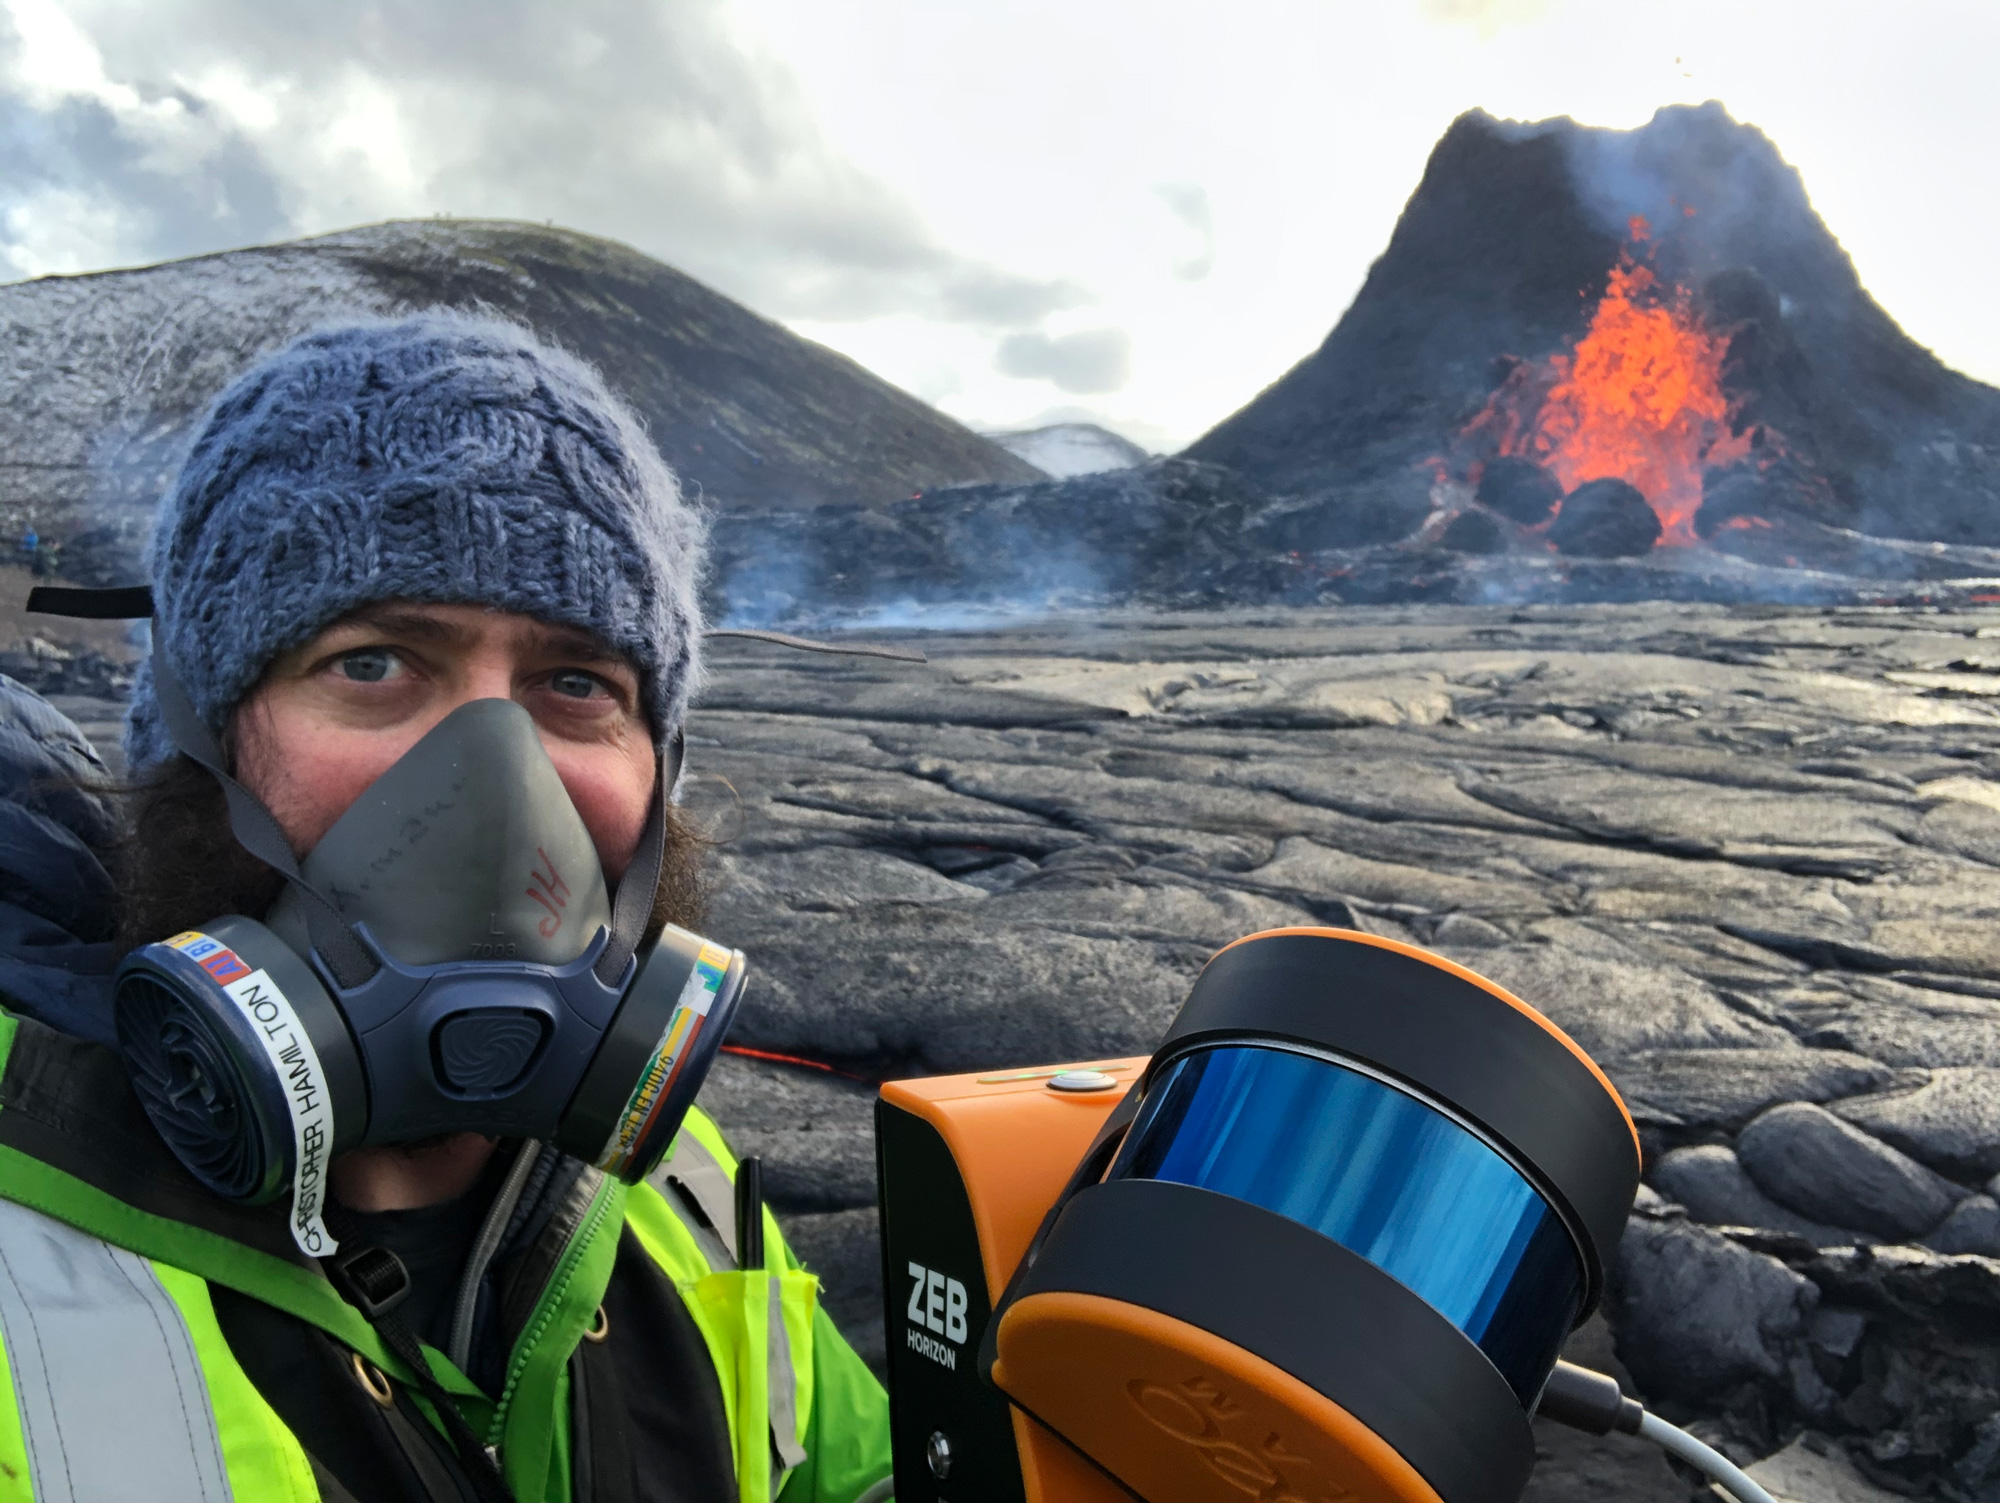 A man in a mask holding a LIDAR instrument in front of a volcano.